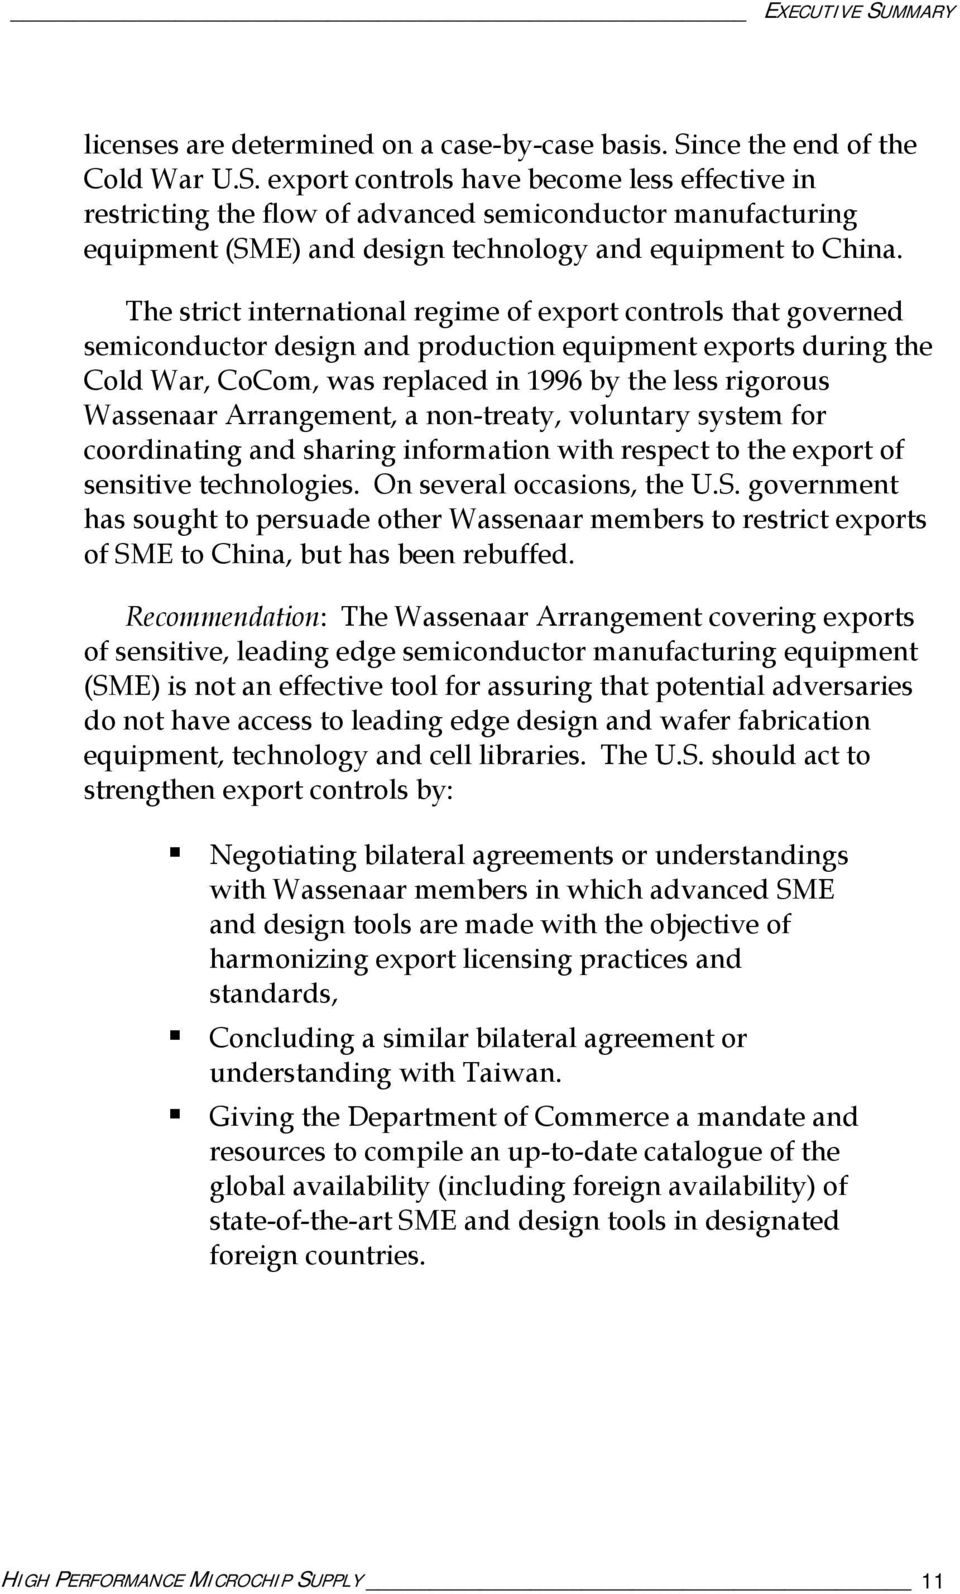 Arrangement, a non-treaty, voluntary system for coordinating and sharing information with respect to the export of sensitive technologies. On several occasions, the U.S.